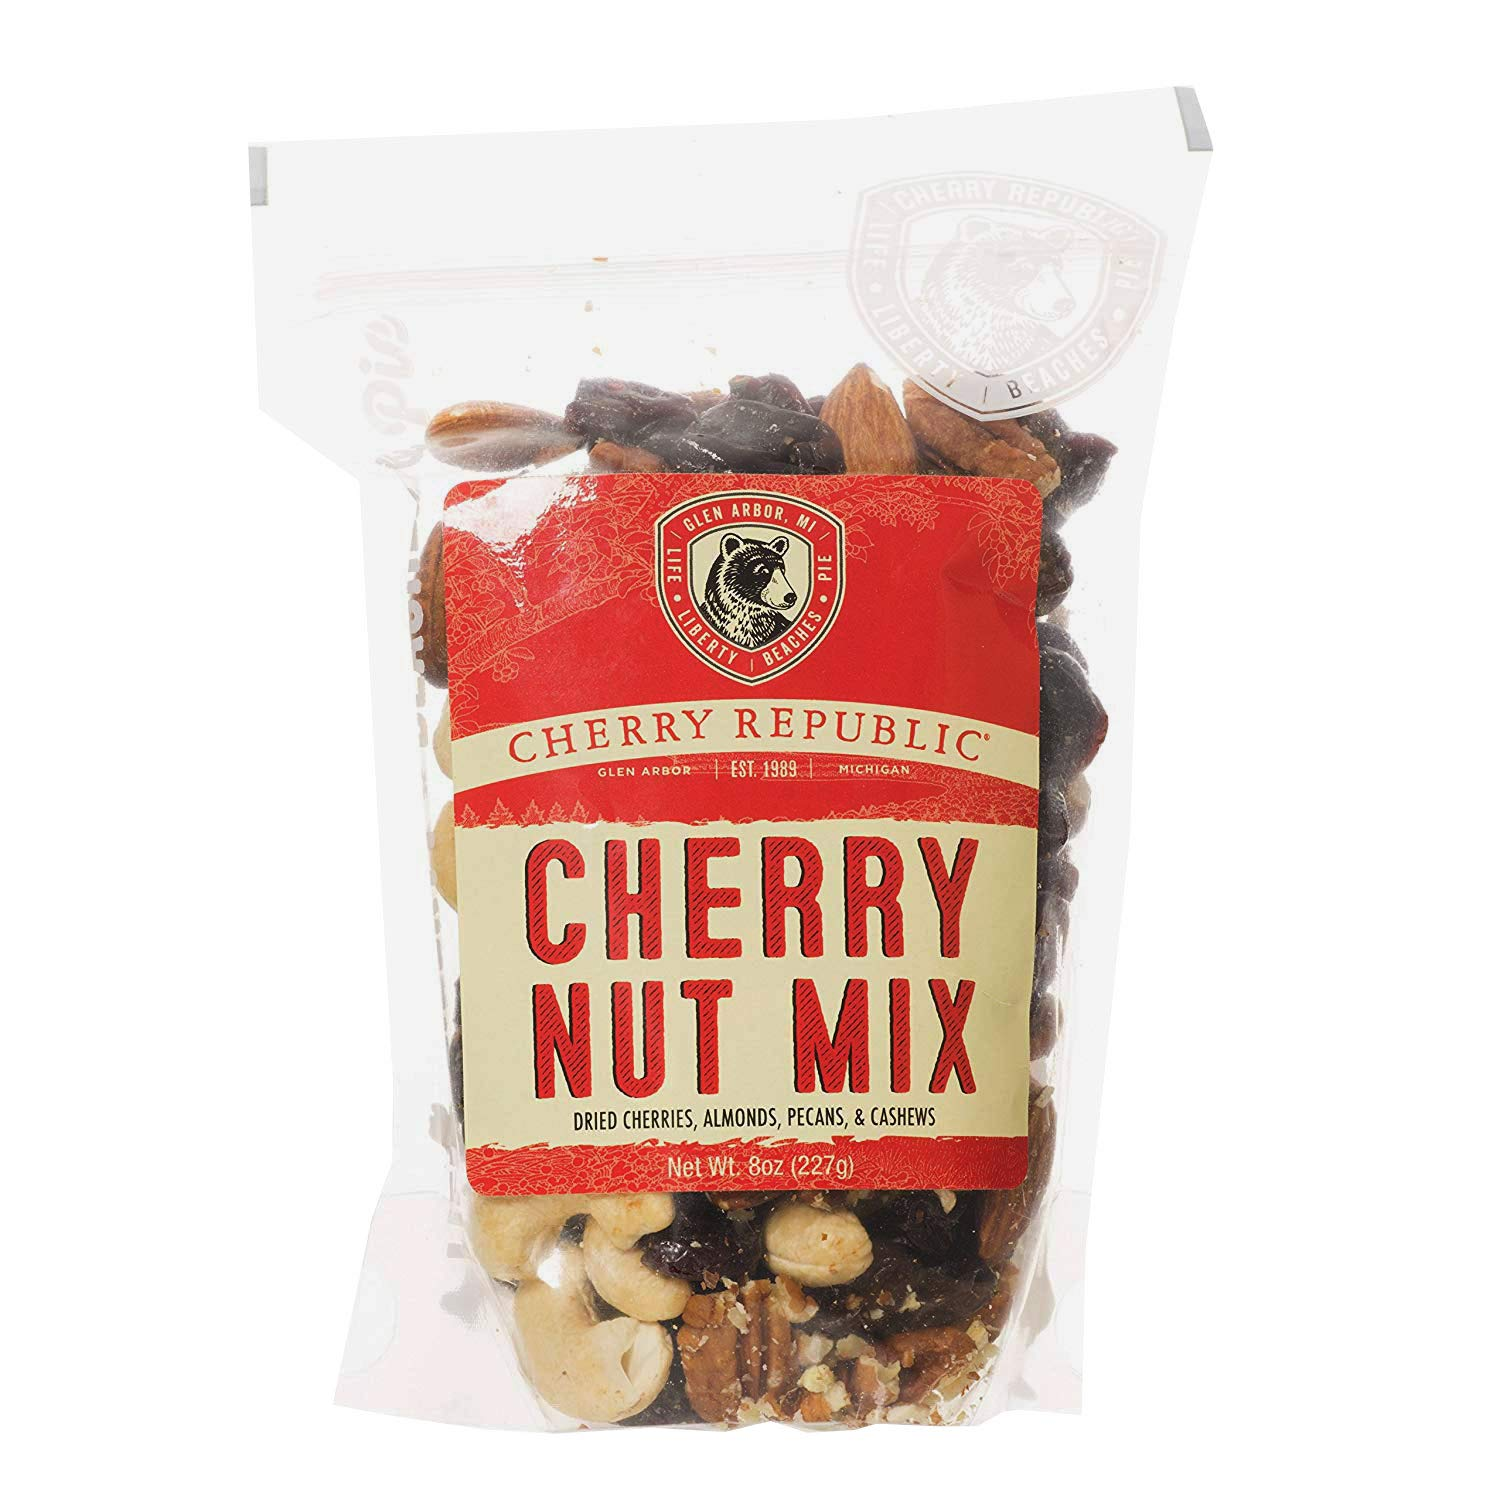 Cherry Republic Cherry Nut Mix - Nutrition-rich Trail Mix Featuring Montmorency Tart Dried Cherries, Almonds, Cashews & Pecans - Assorted Nut Mix - All-purpose, Healthy Snack Mix - 8 Ounces